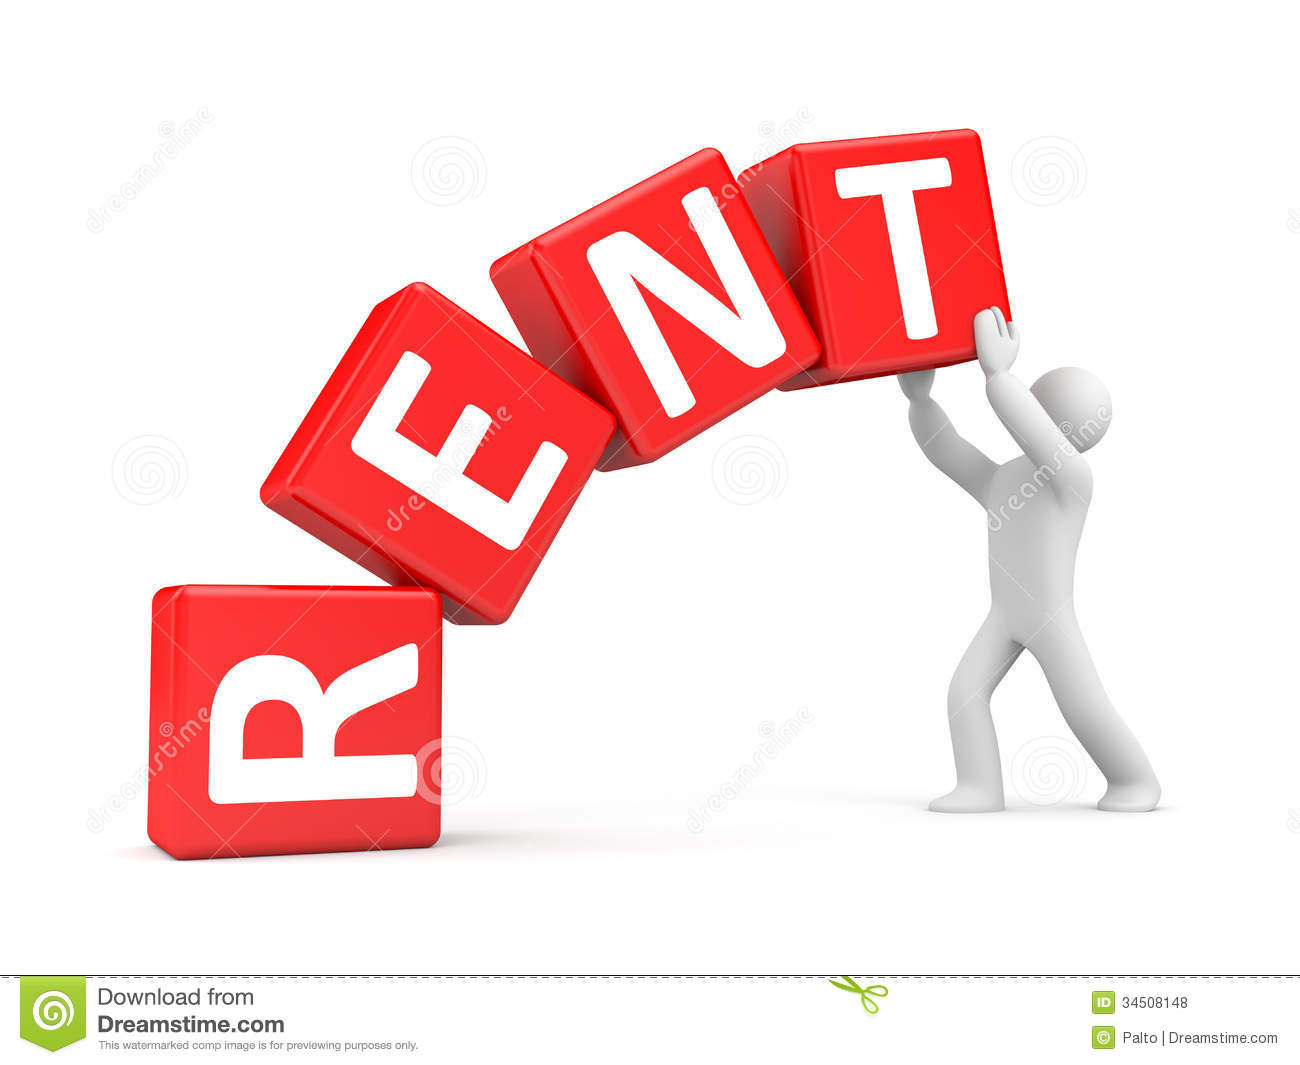 Rent Metaphor Royalty Free Stock Photos - Image: 34508148